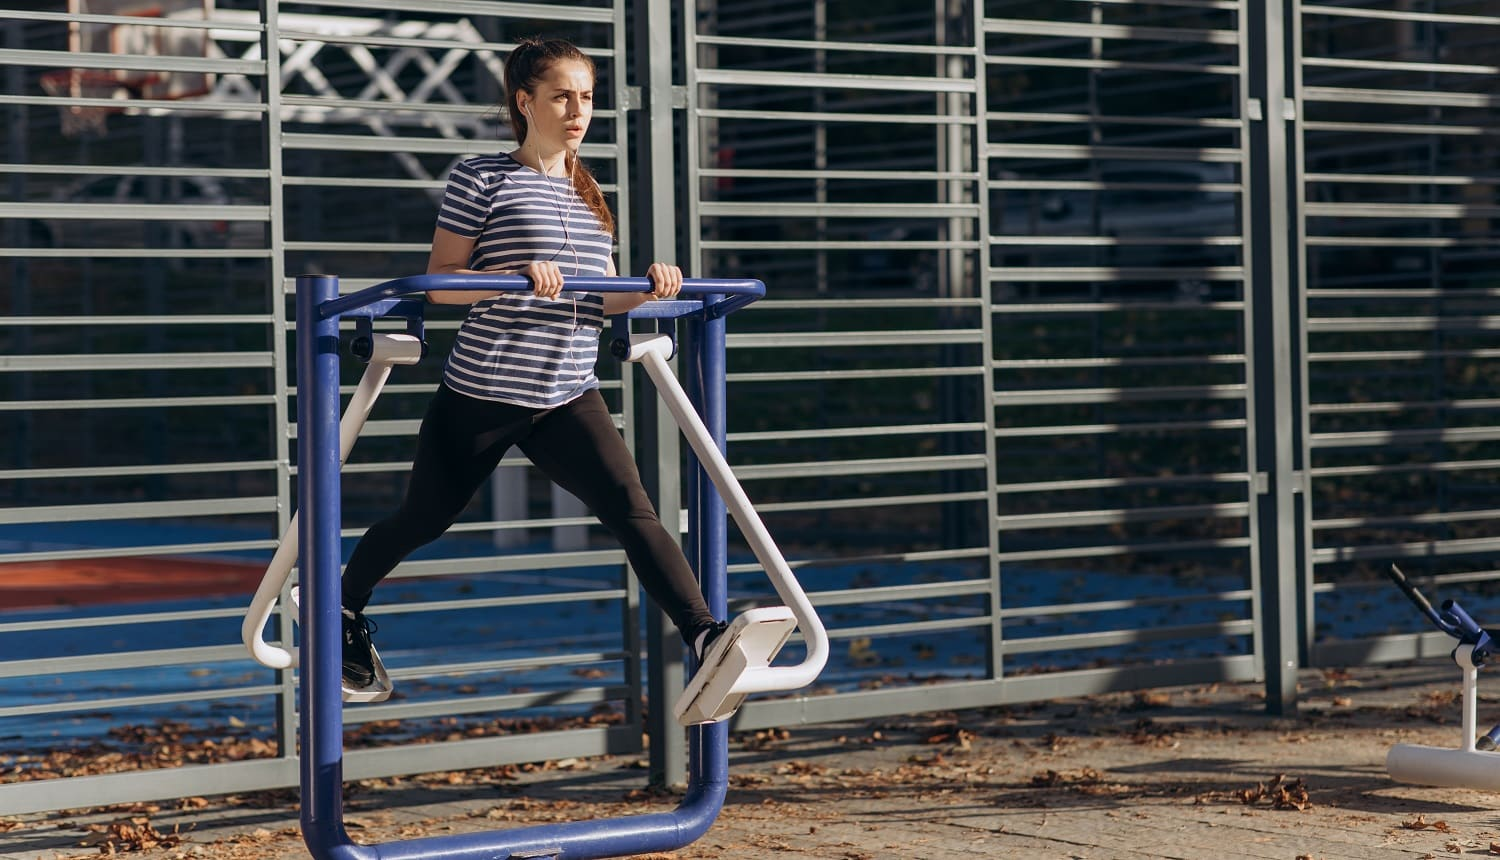 Young sportive woman do walking exercises at outdoor gym, using cross trainer machine. Sunny morning time, girl perform daily fitness workout. Concept of losing weight with exercise for health